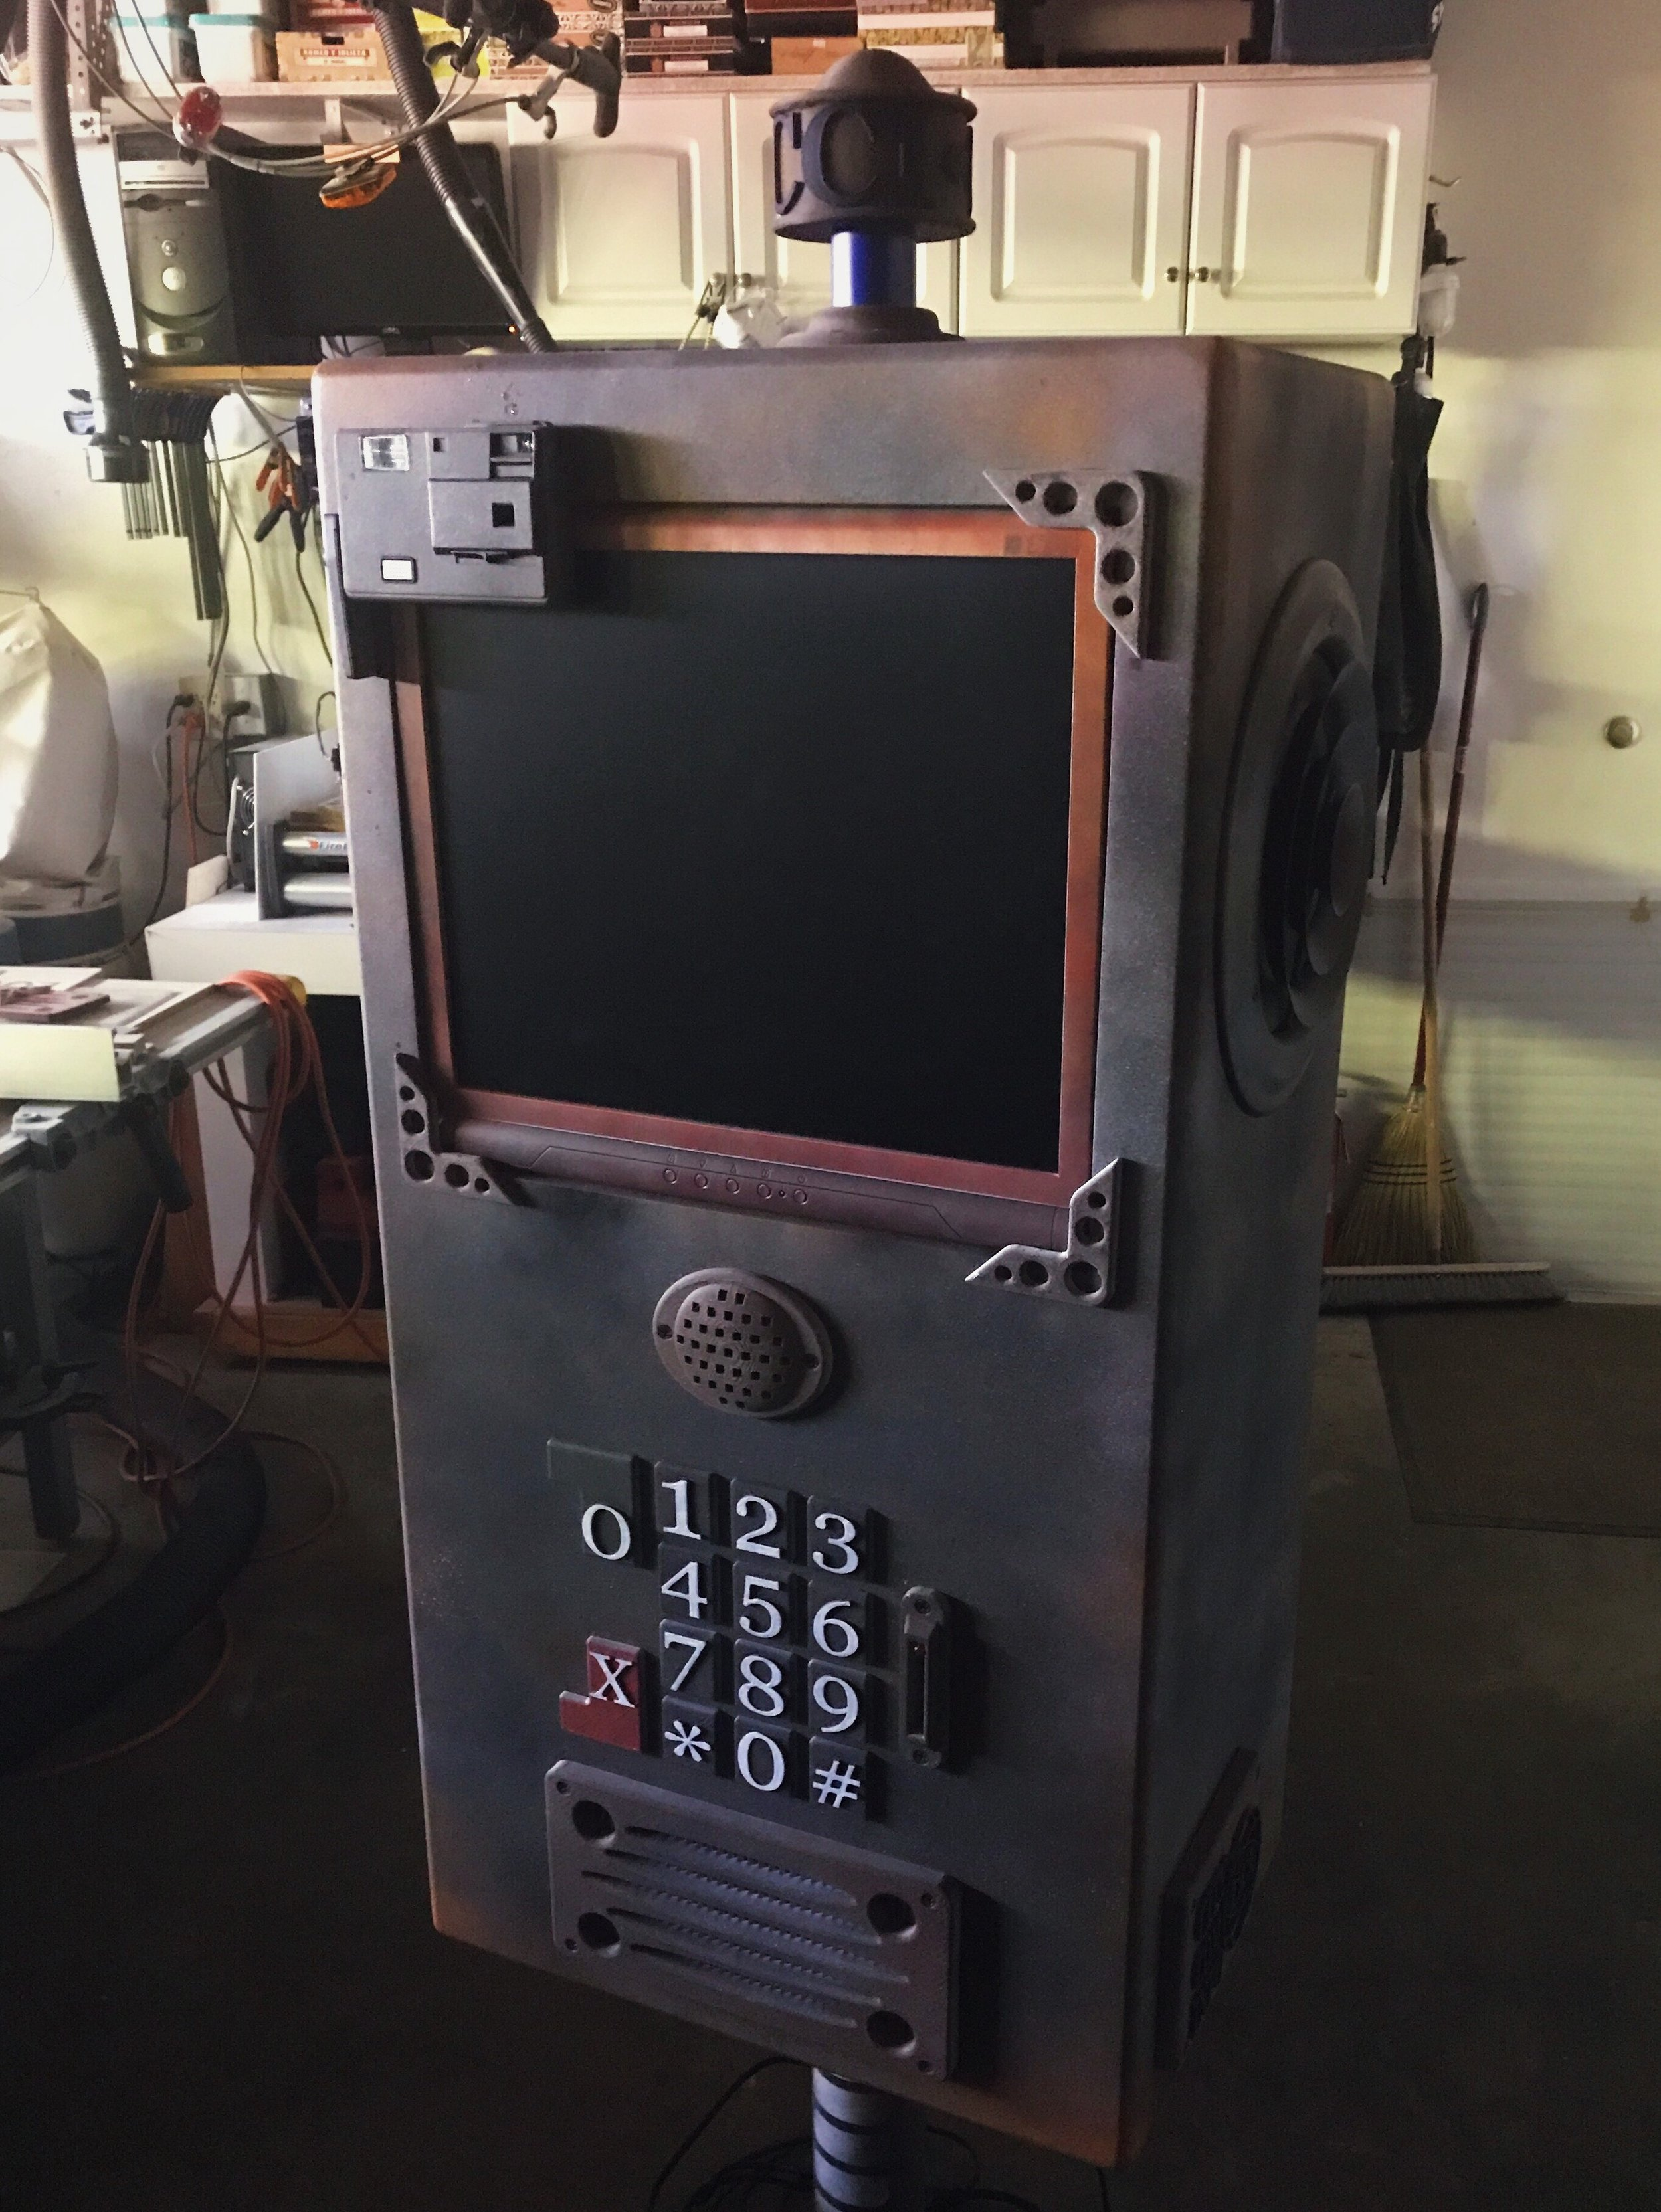 The finished ComBox Prop for Juice.